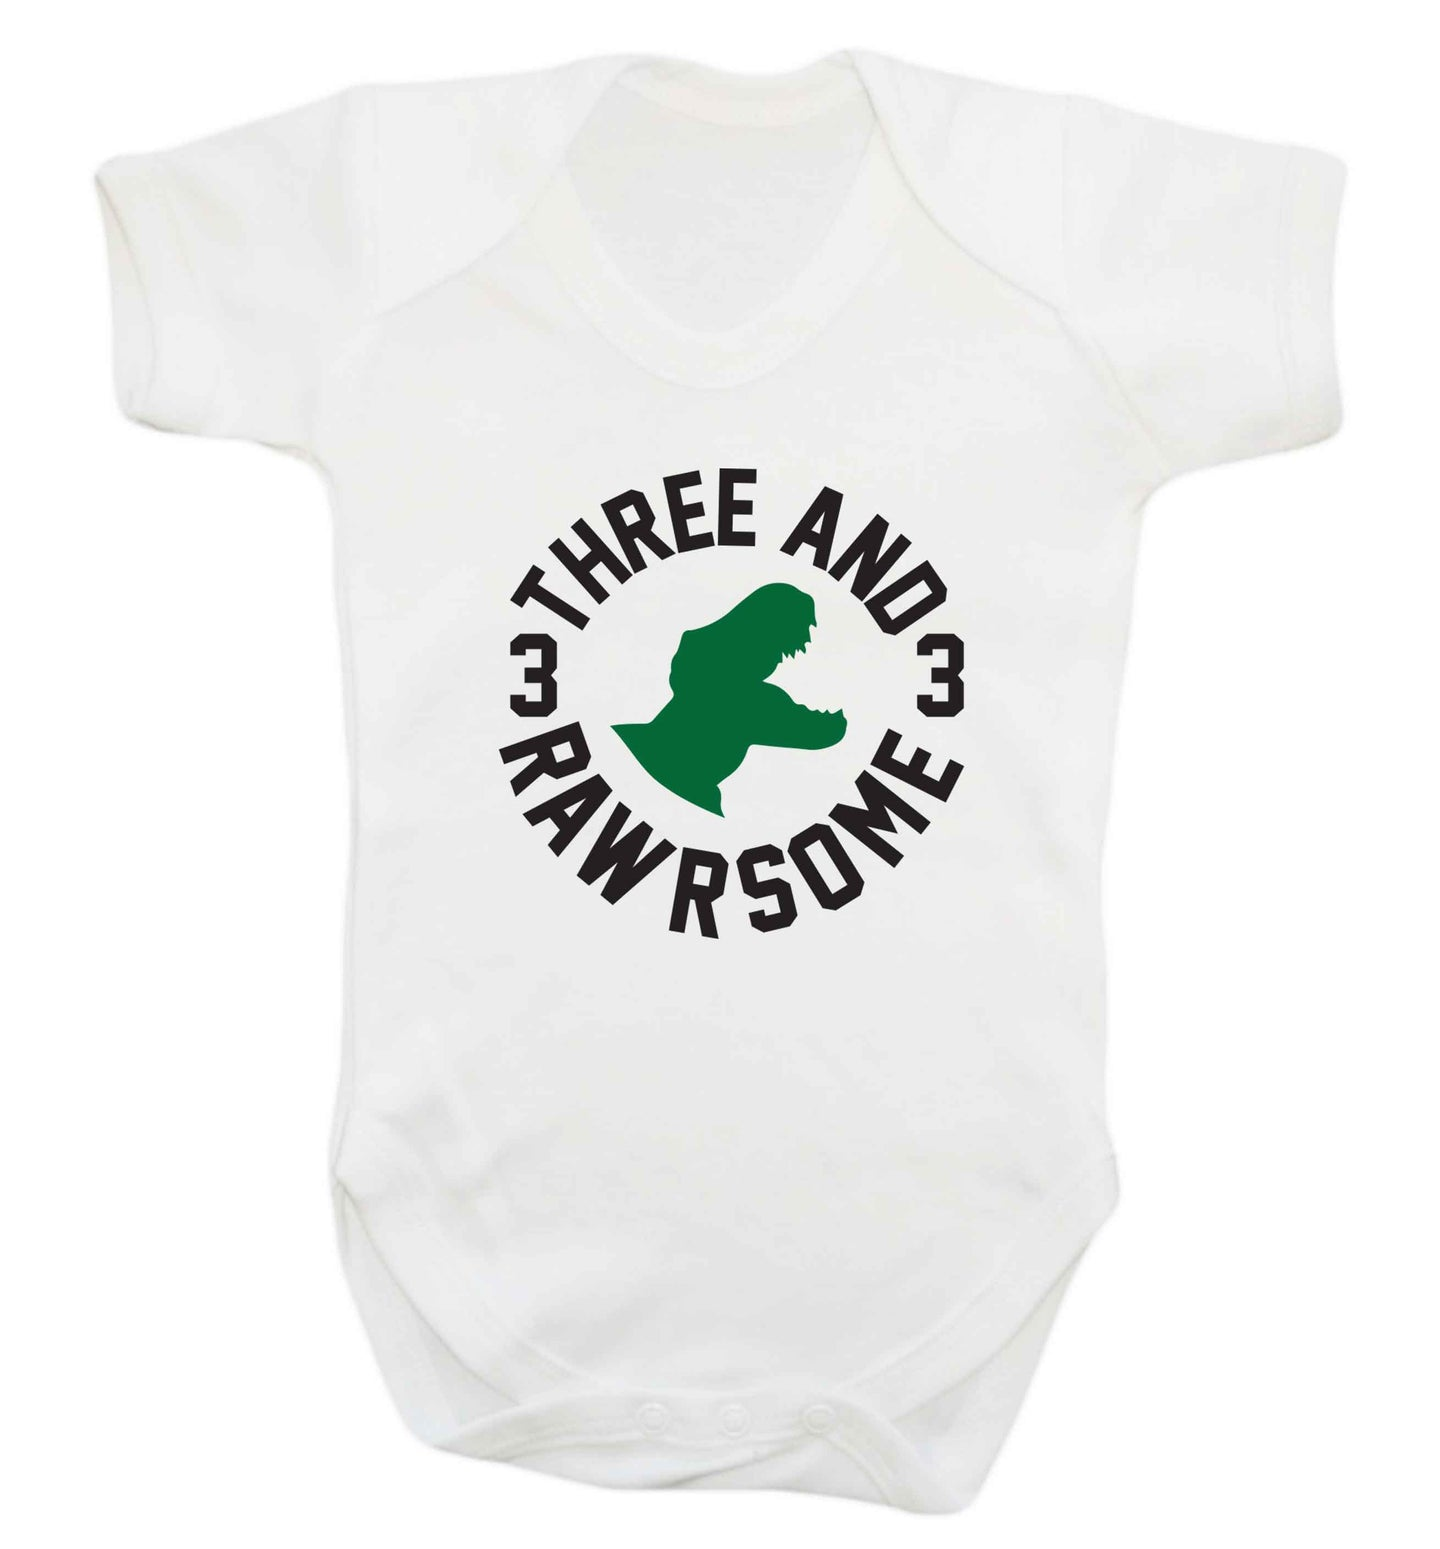 Three and rawrsome baby vest white 18-24 months